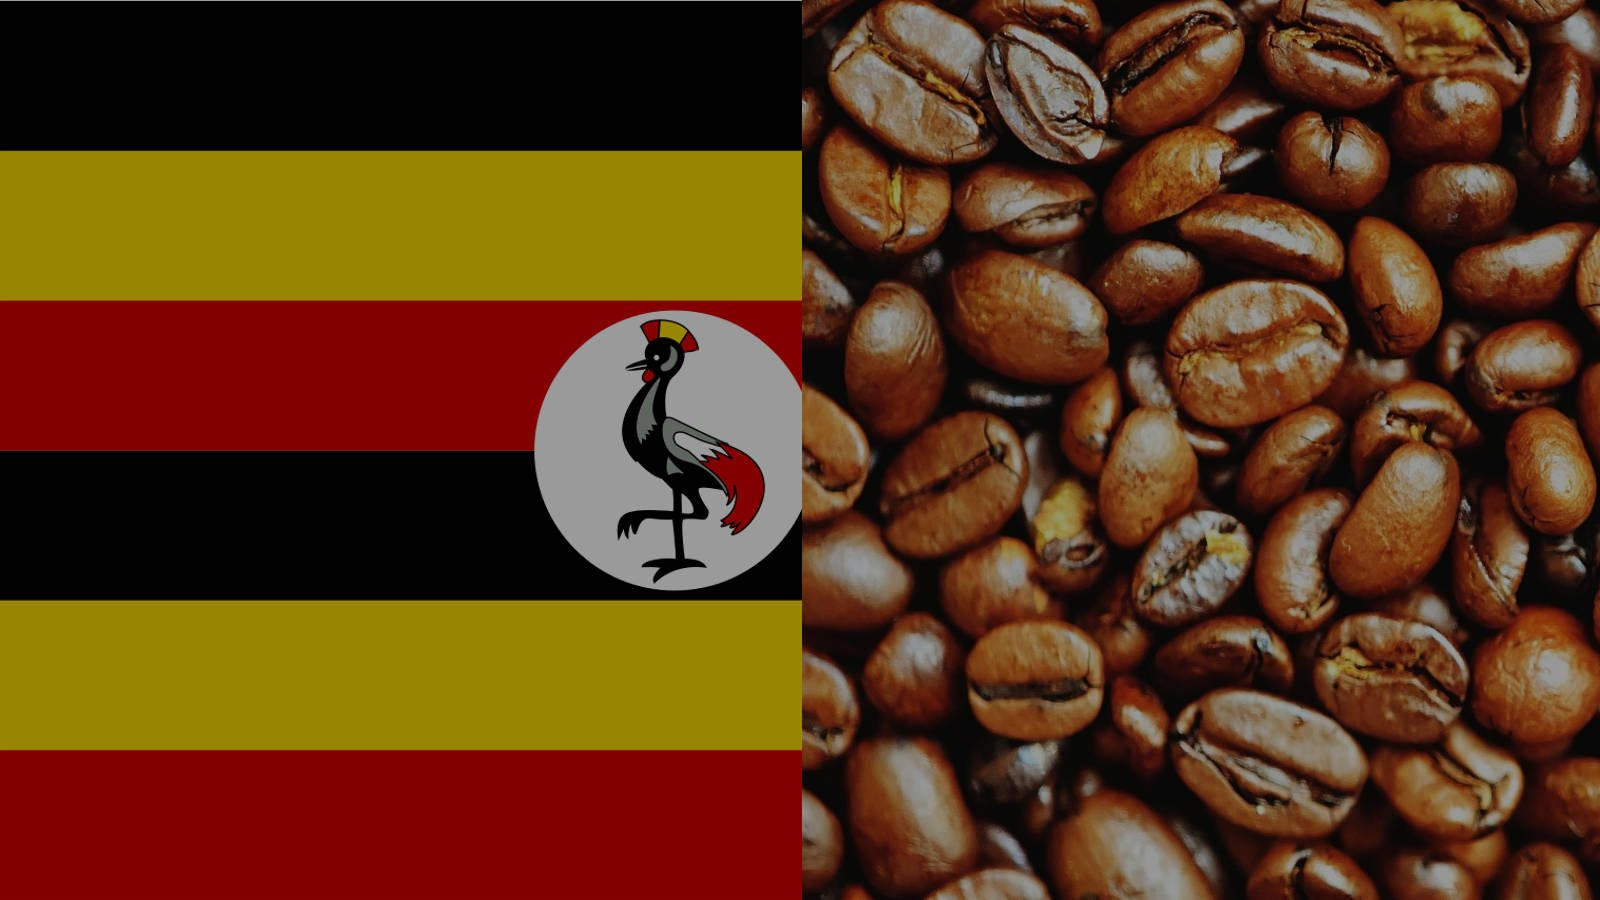 uganda_coffee_producing_country